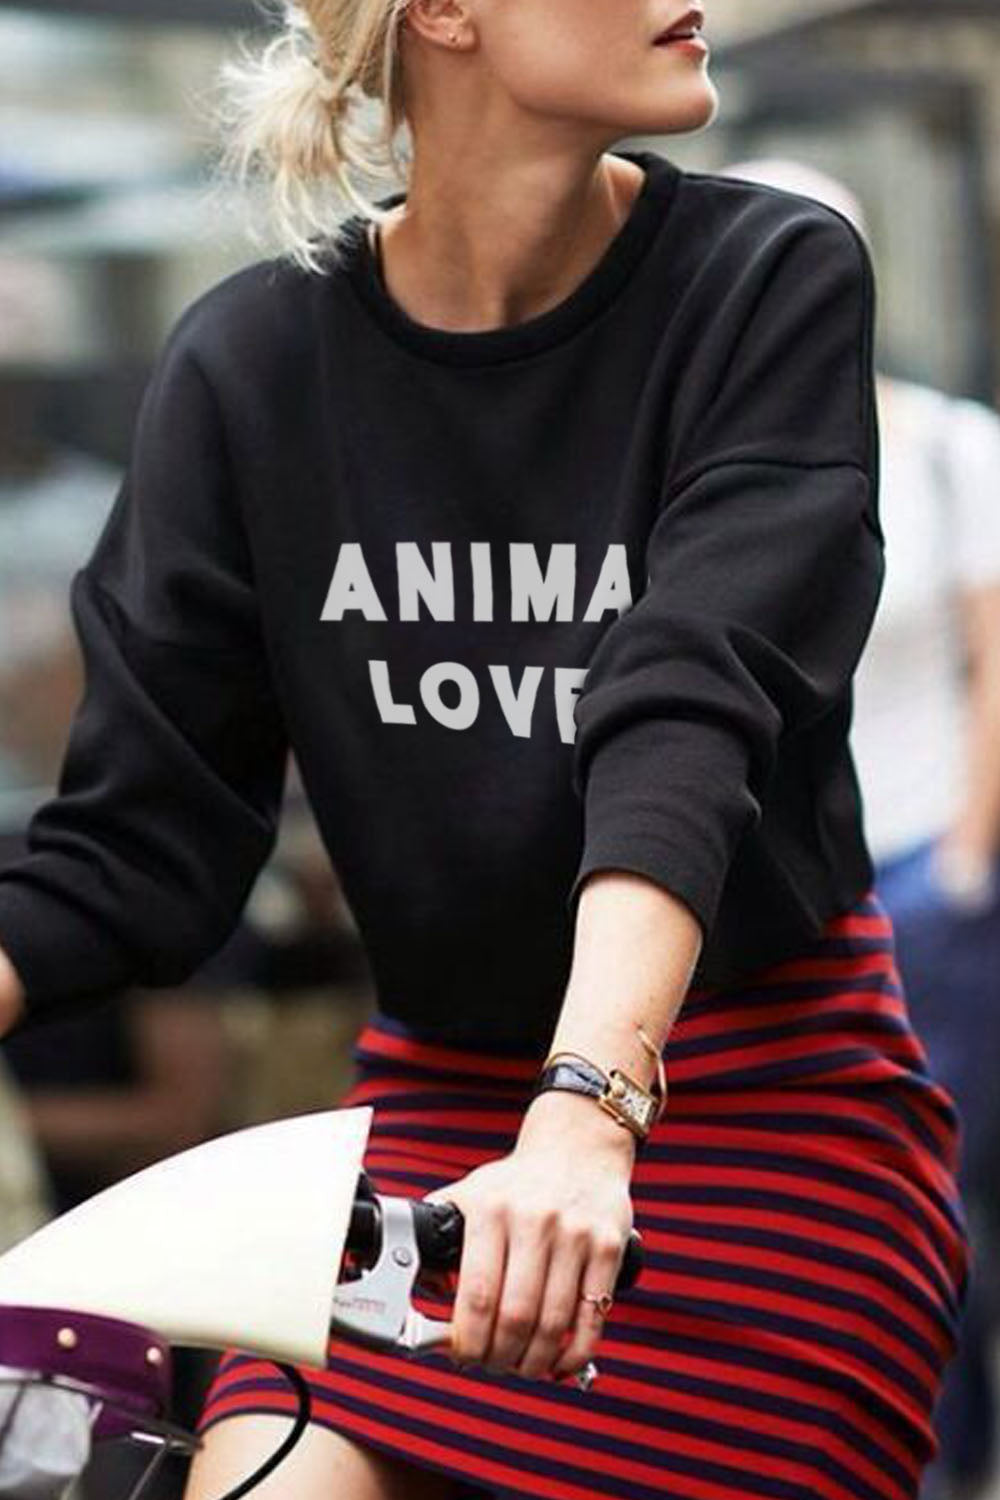 WOMEN'S CREWNECK - Animal Lover